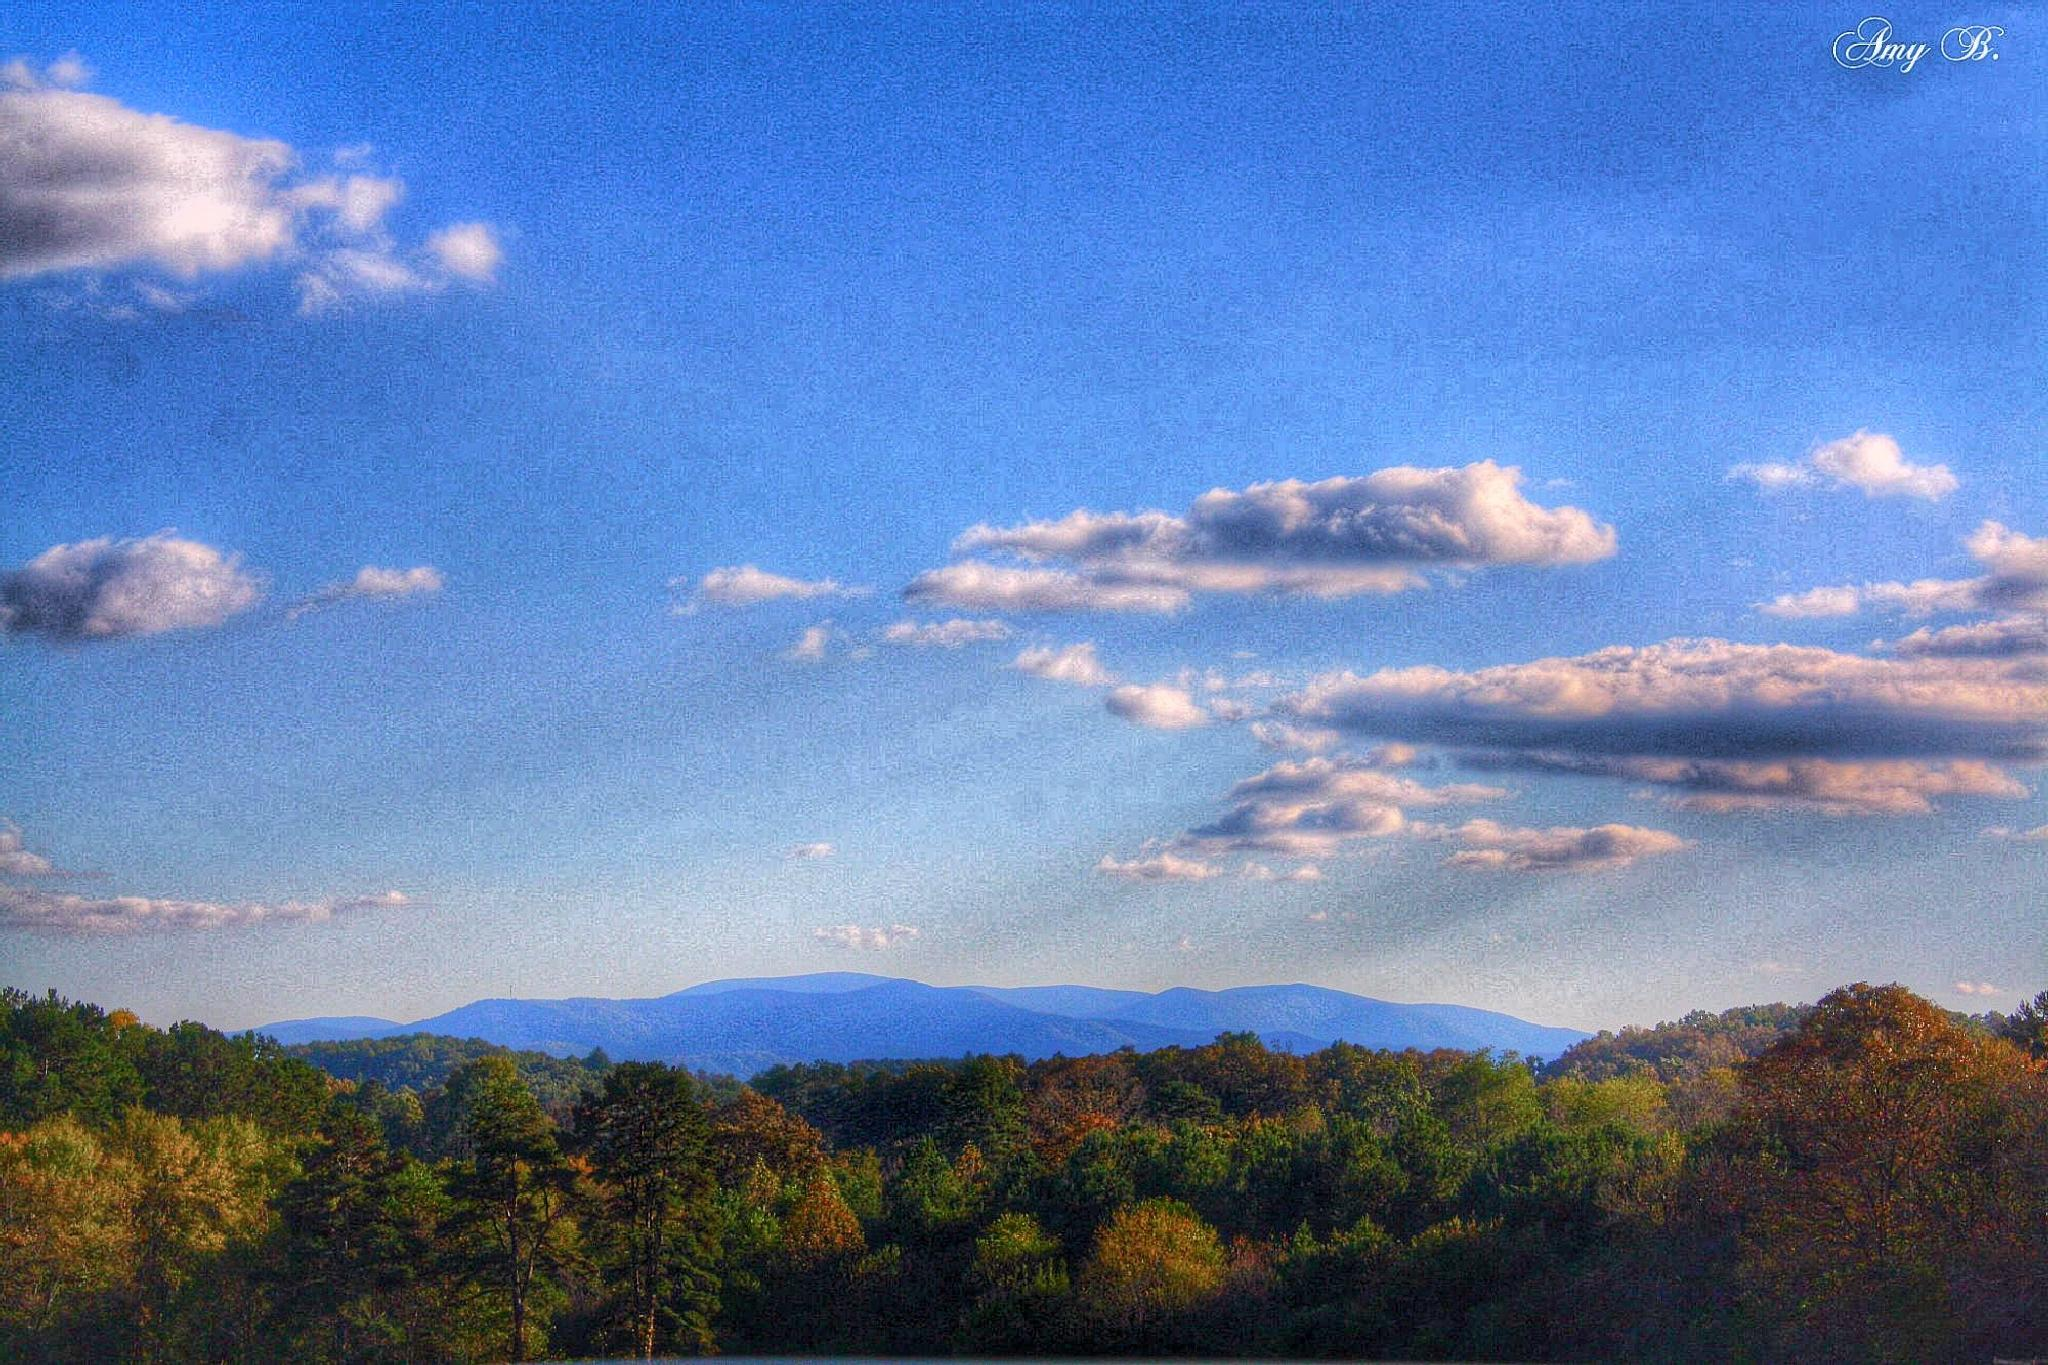 Blue ridge mountains and blue skies by amy.conger.9